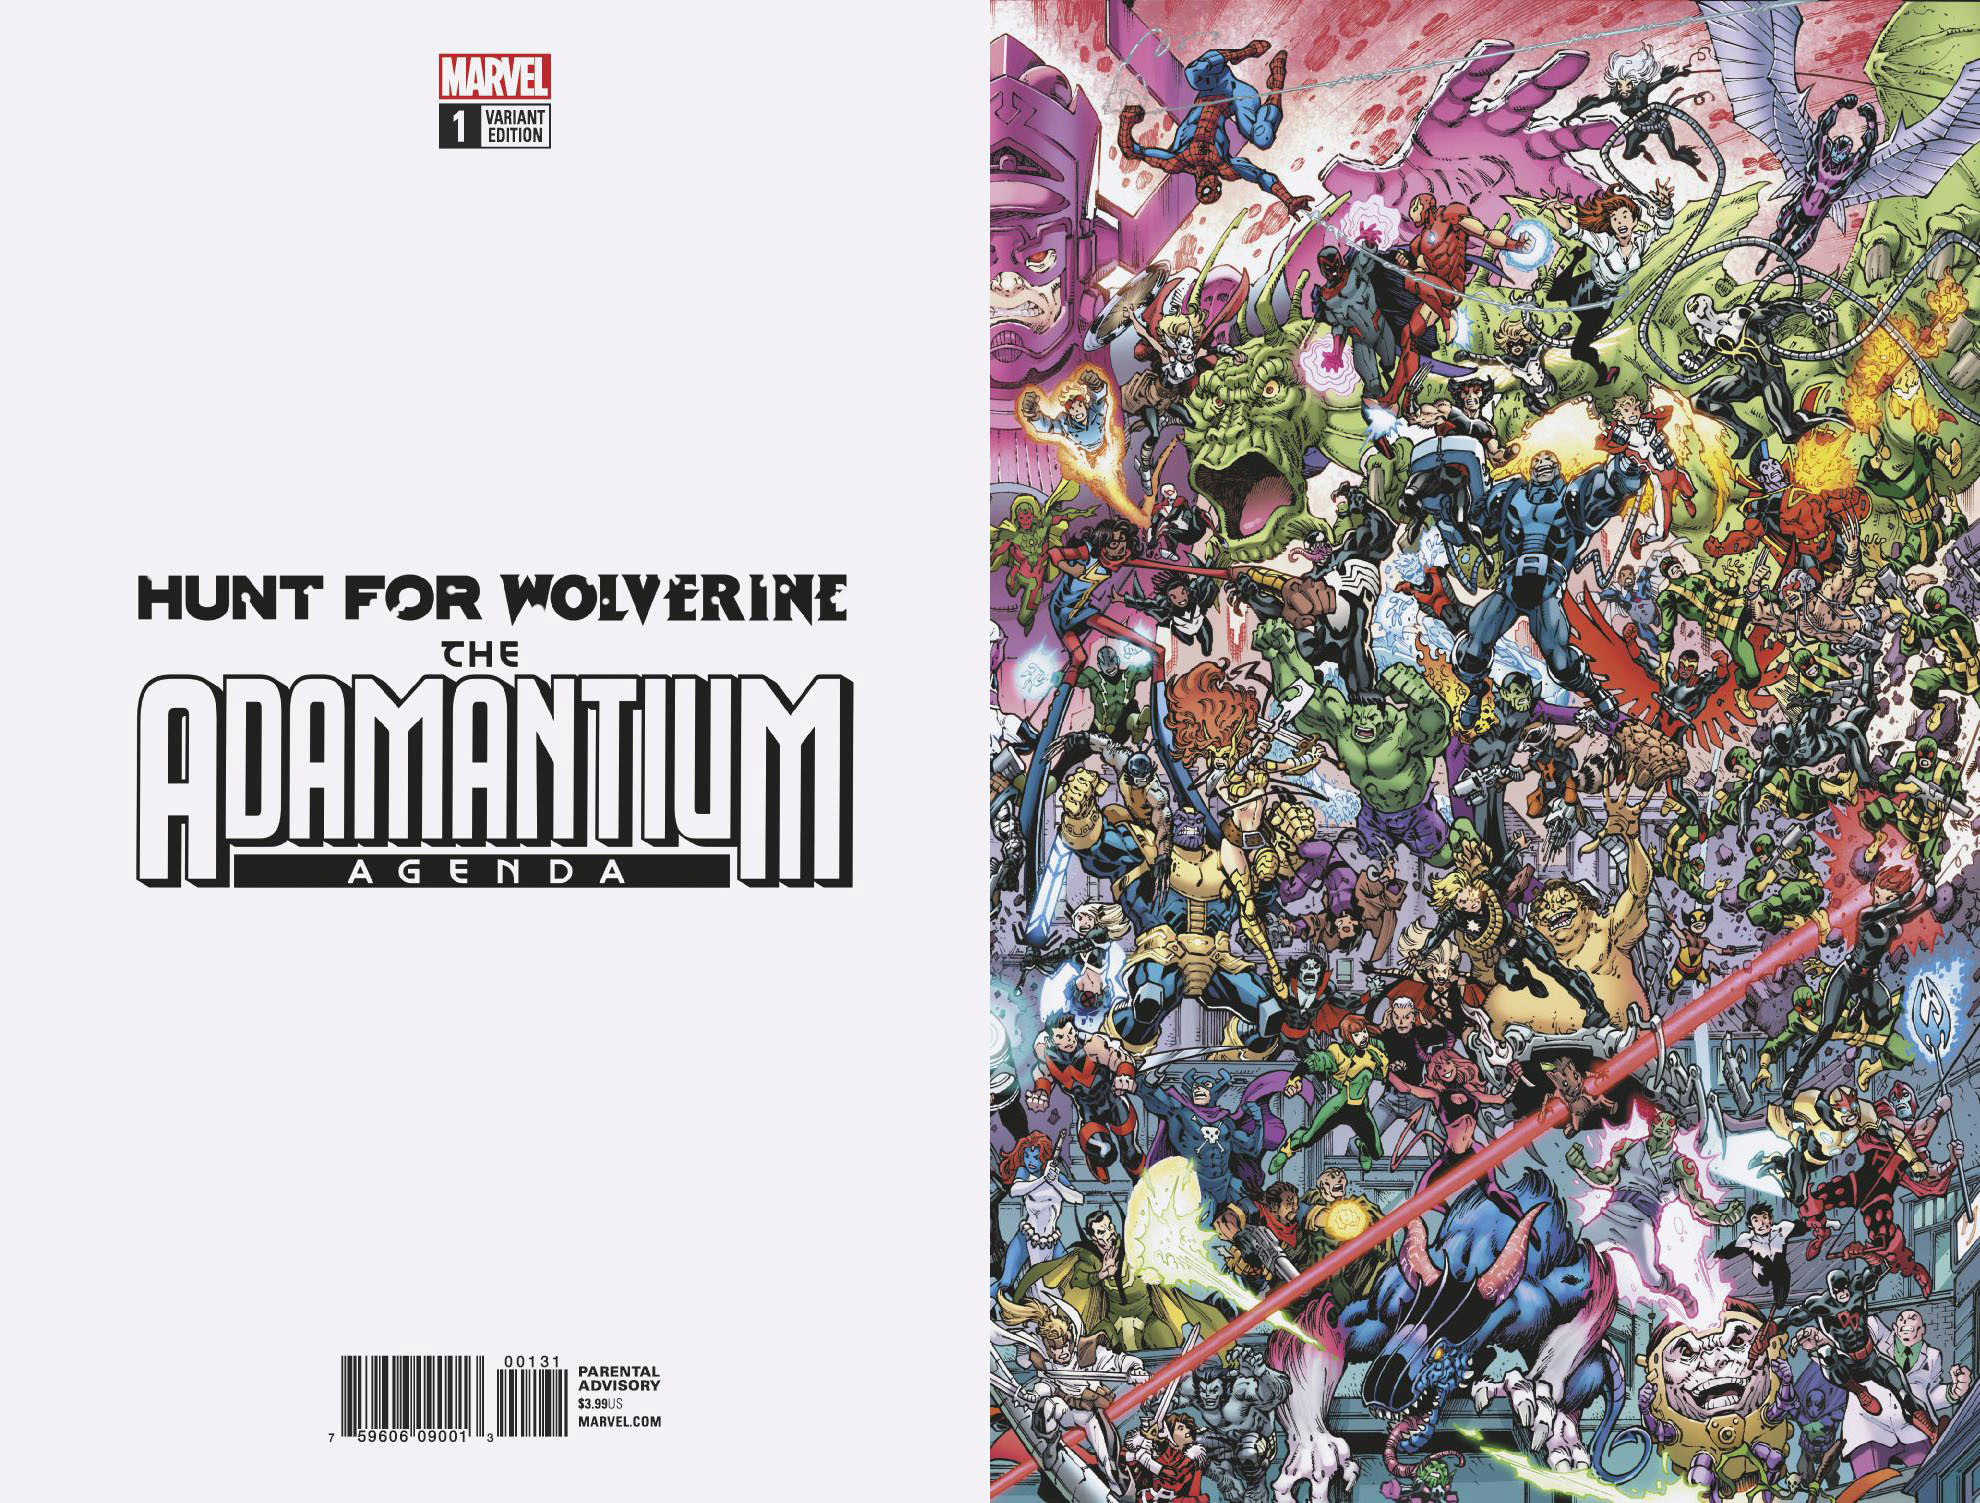 HUNT FOR WOLVERINE ADAMANTIUM AGENDA #1 (OF 4) WHERES WOLVER